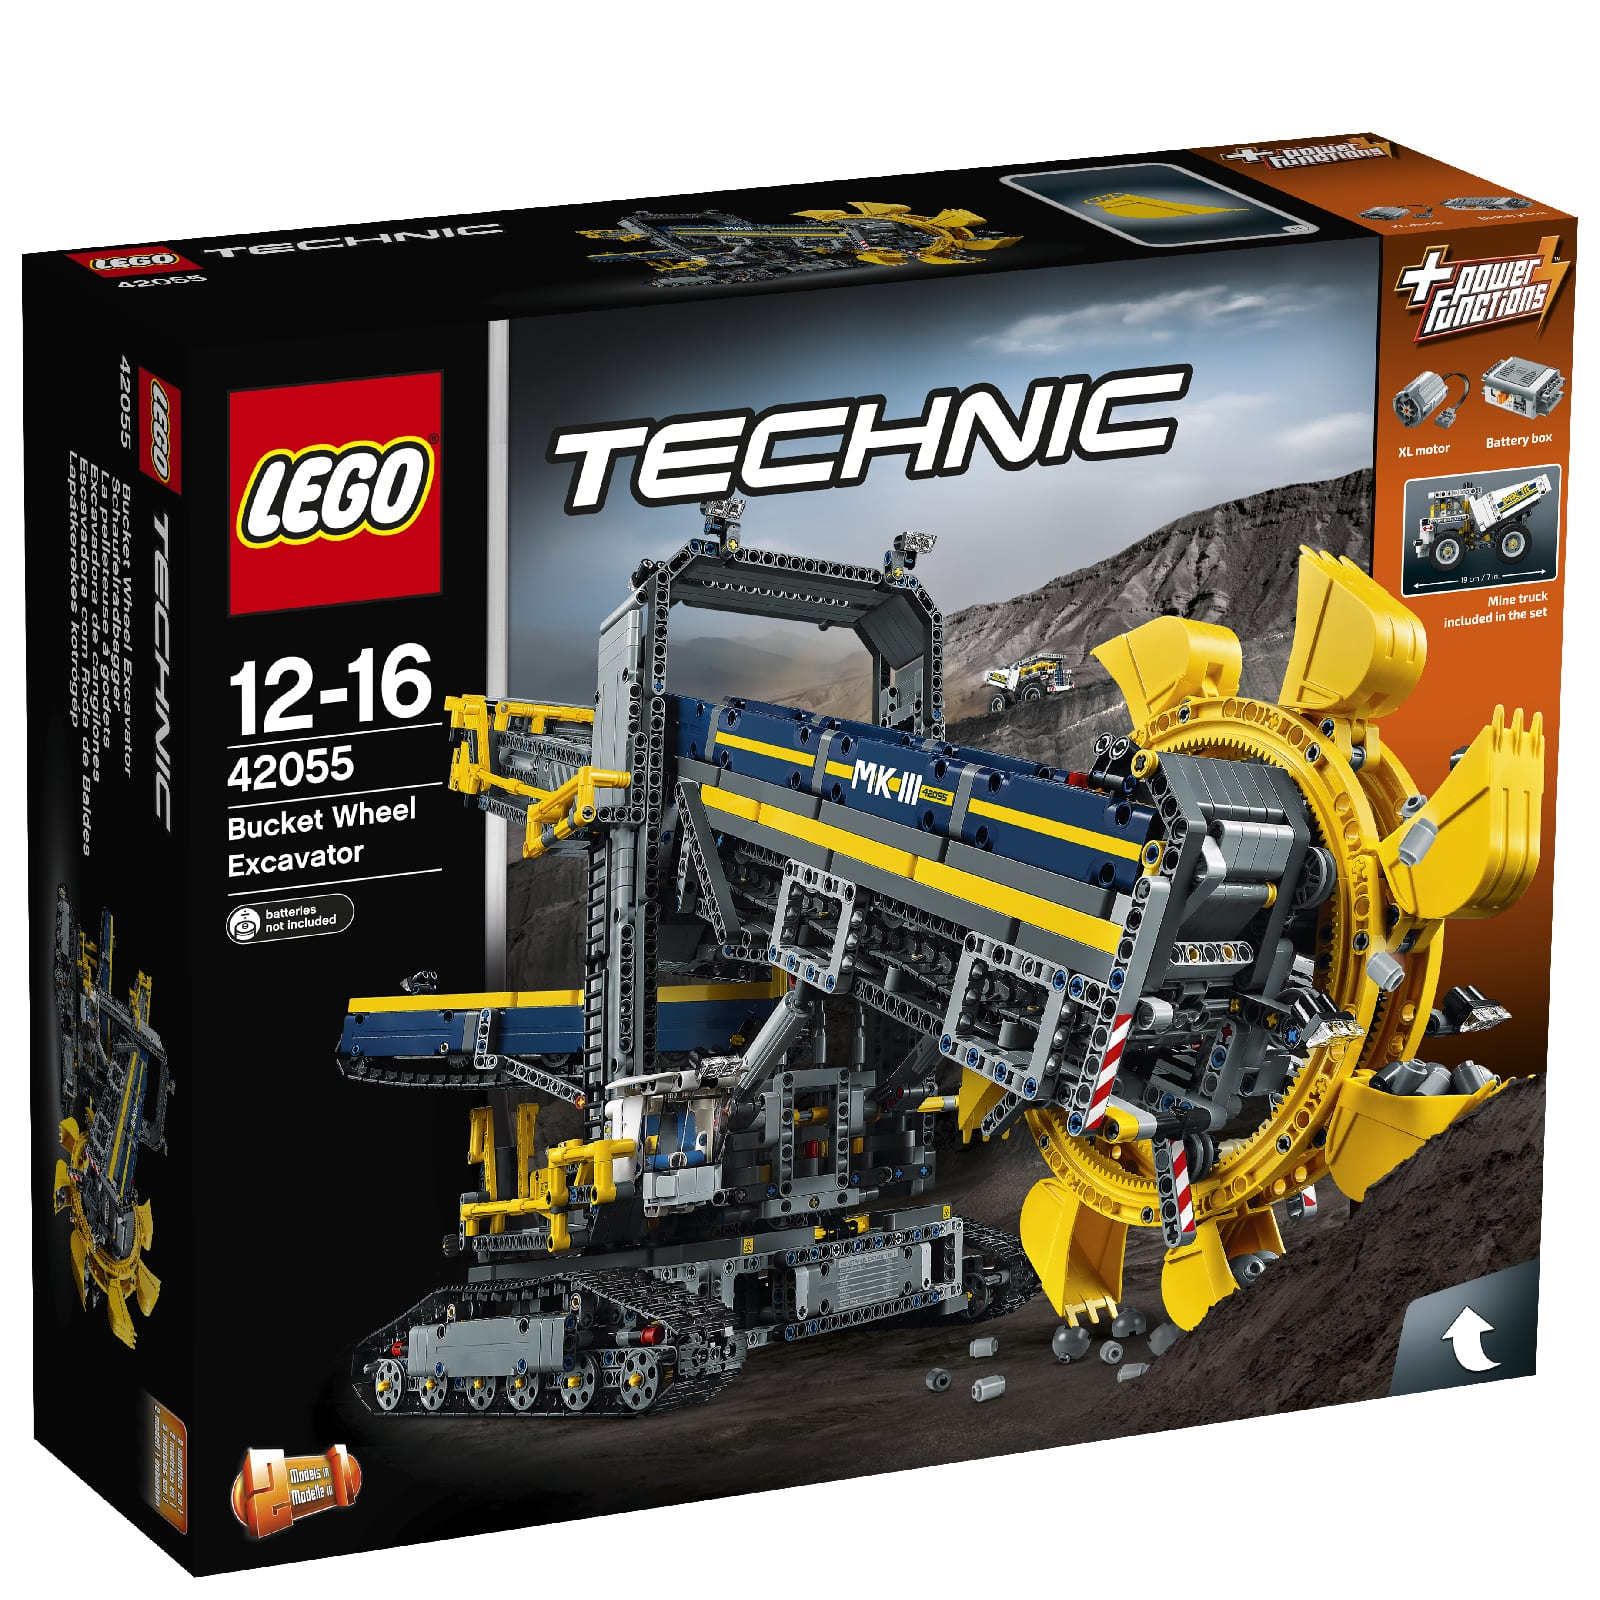 LEGO TECHNIC: Bucket Wheel Excavator (42055) at IWOOT $174.99 w/ Free Shipping